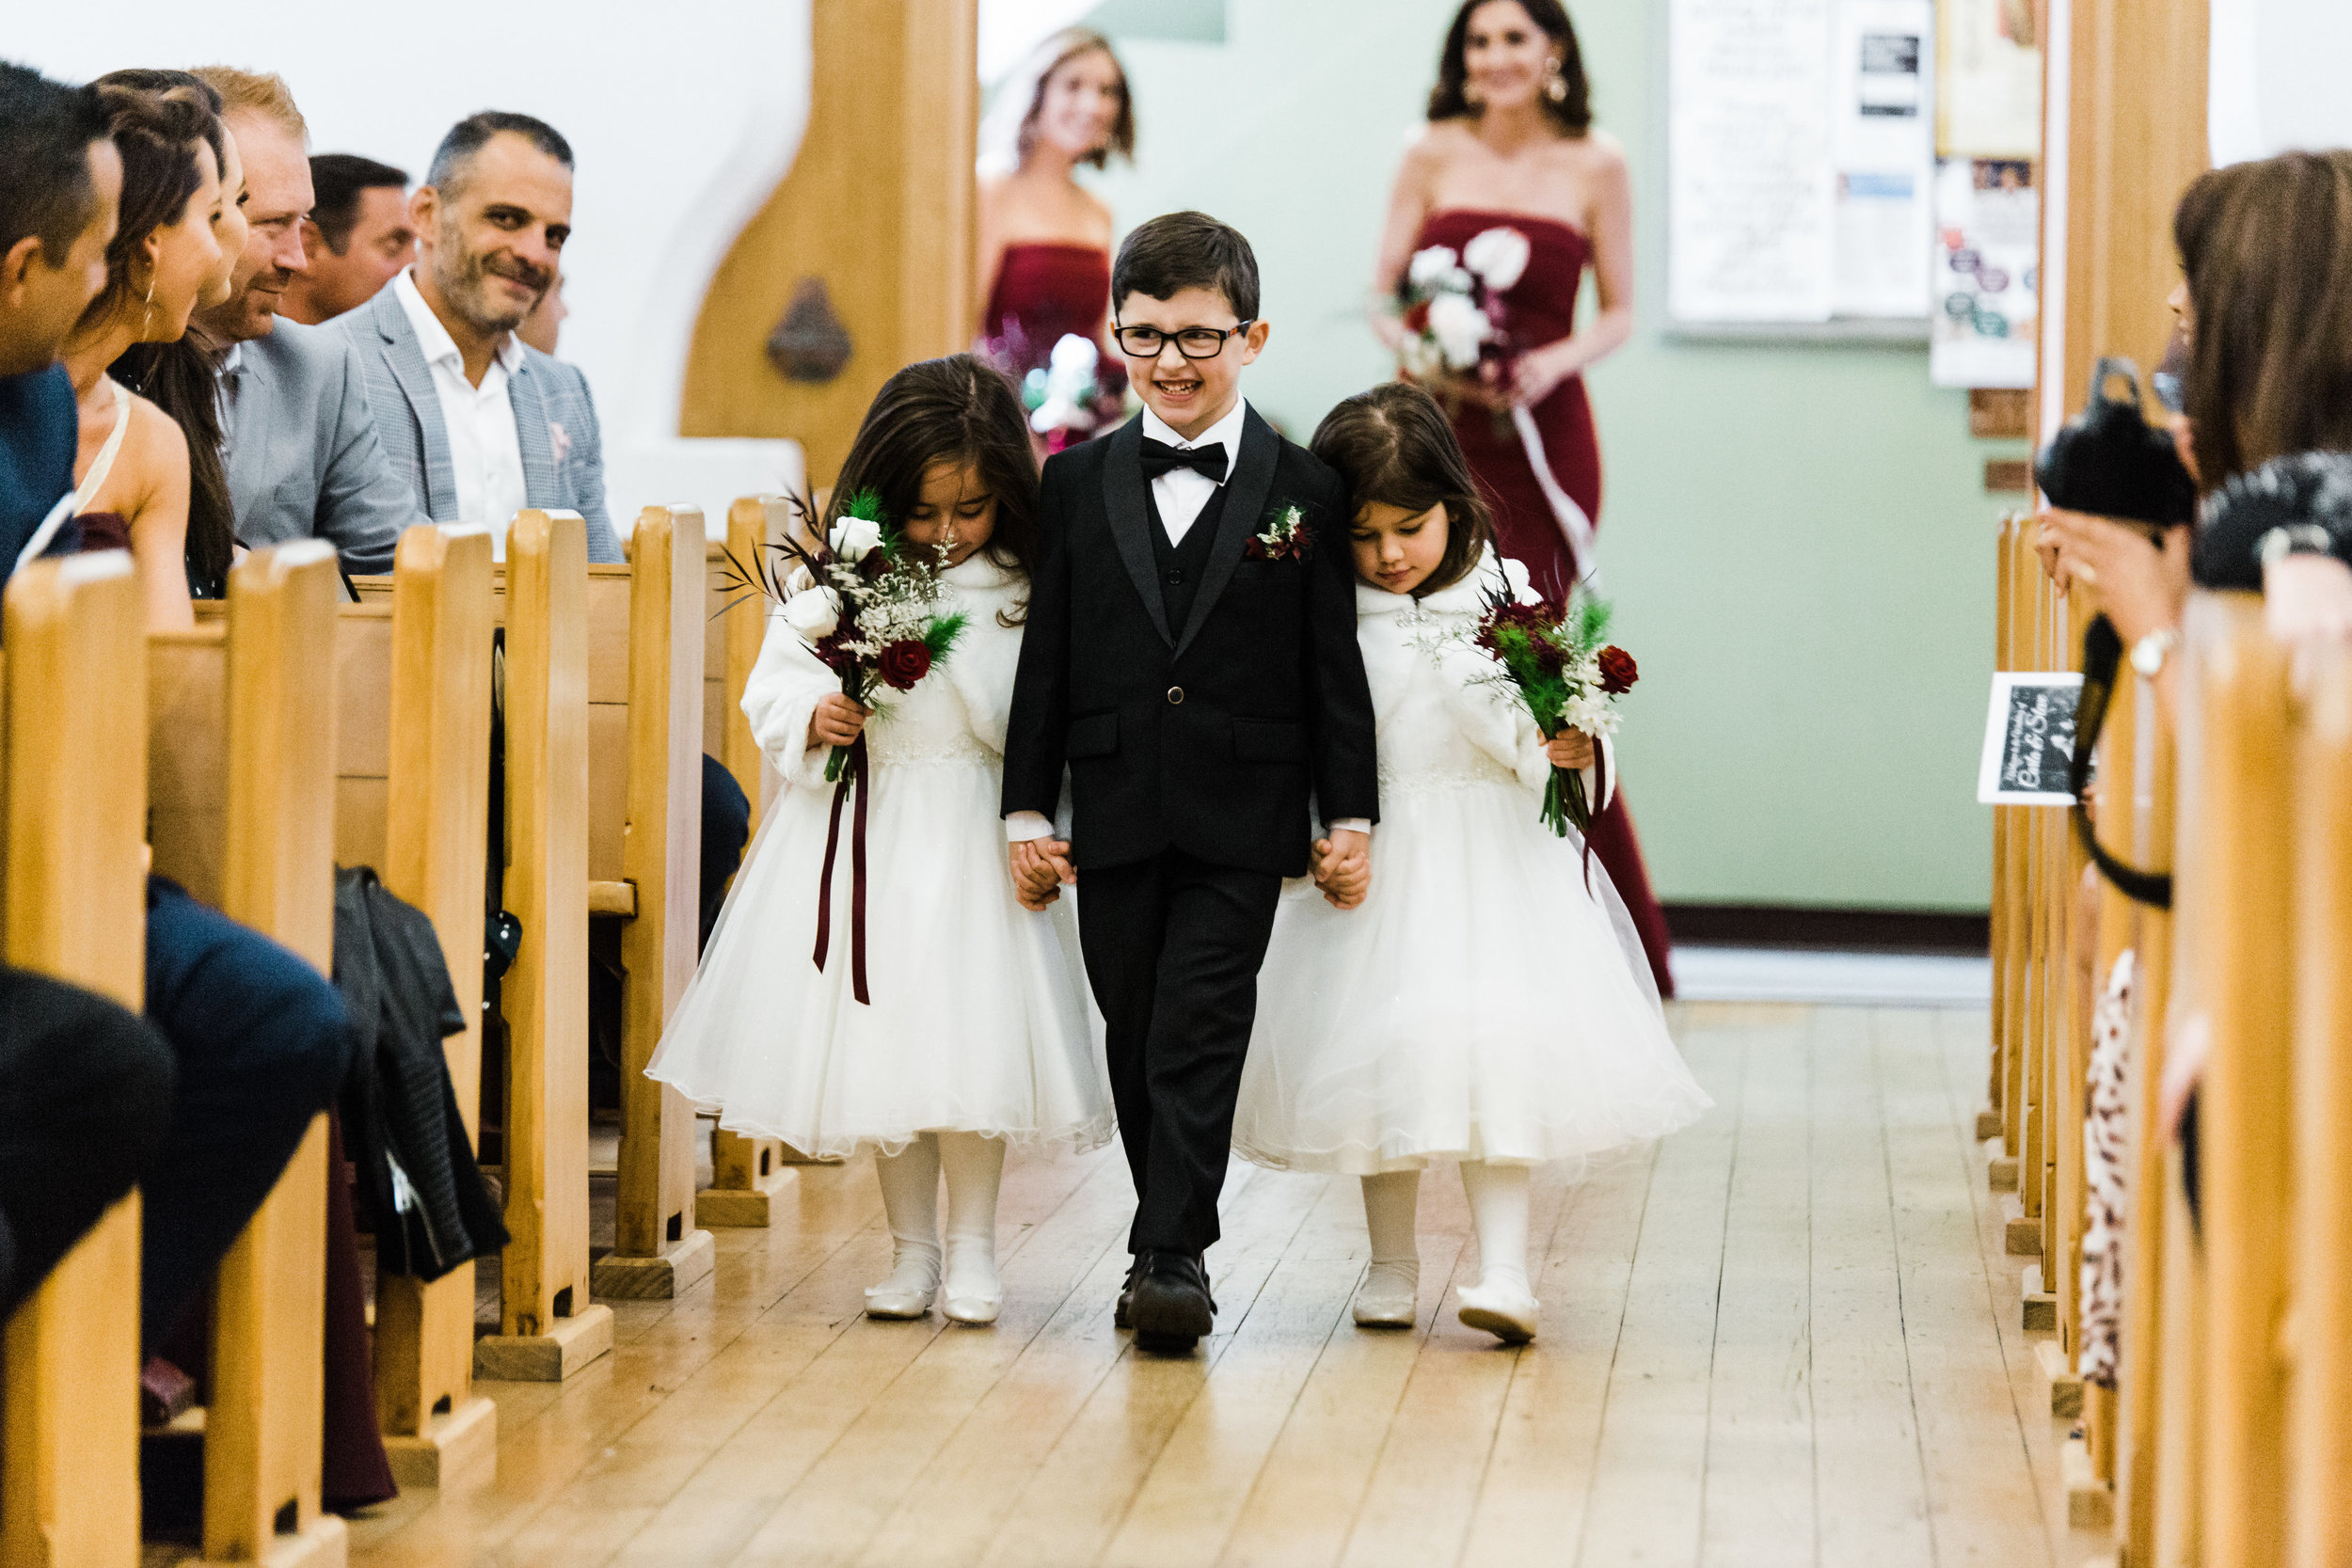 Flower girls & page boys - If you have any children that will form a part of your bridal party and walk down the aisle, it's super cute to add a touch of floral to their outfits too. Whether it be a buttonhole, little posy of flowers, a flower crown or a basket of throw petals.